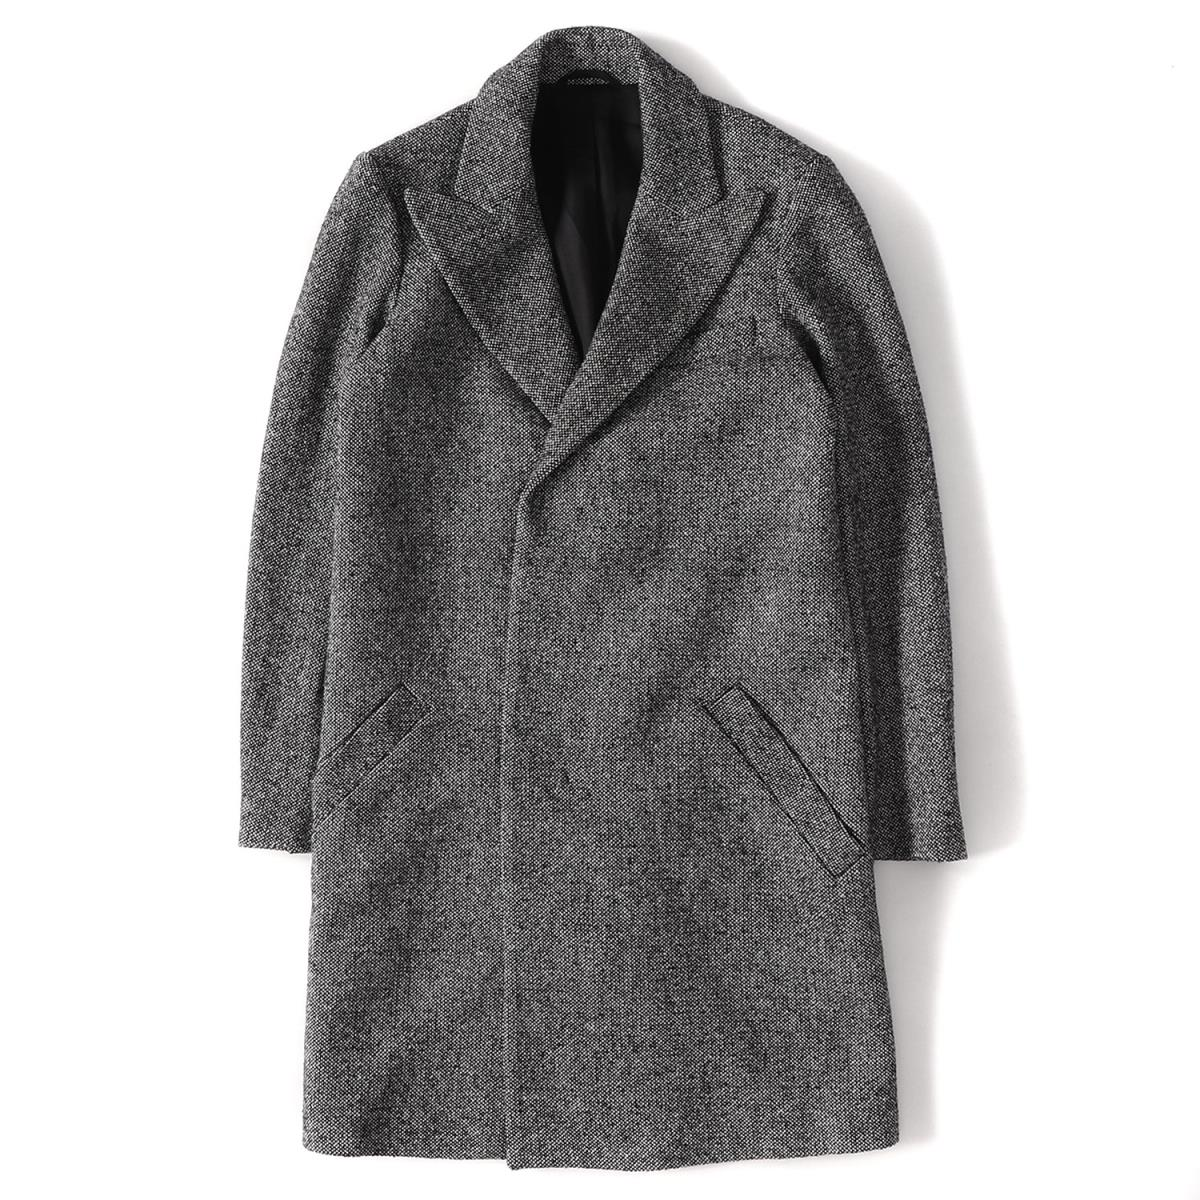 wholesale sales official photos best quality Product made in CARVEN (Cal Venn) wool tweed Chester coat Portugal Blue  Bell Japan tag gray 44